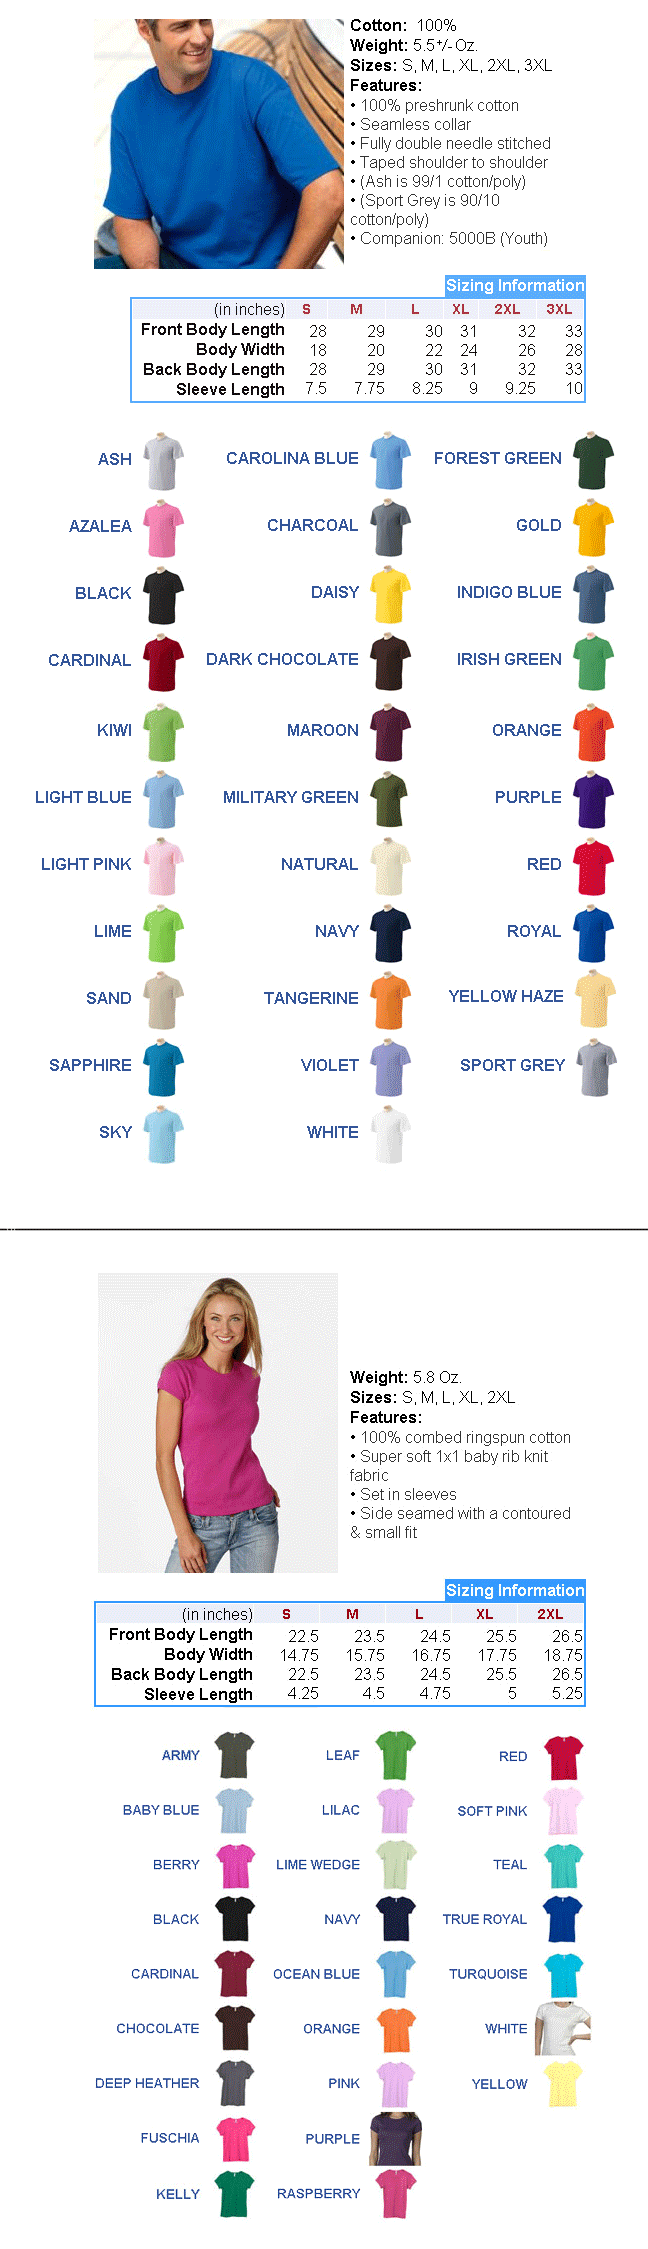 Men's Tshirt Size and Colors